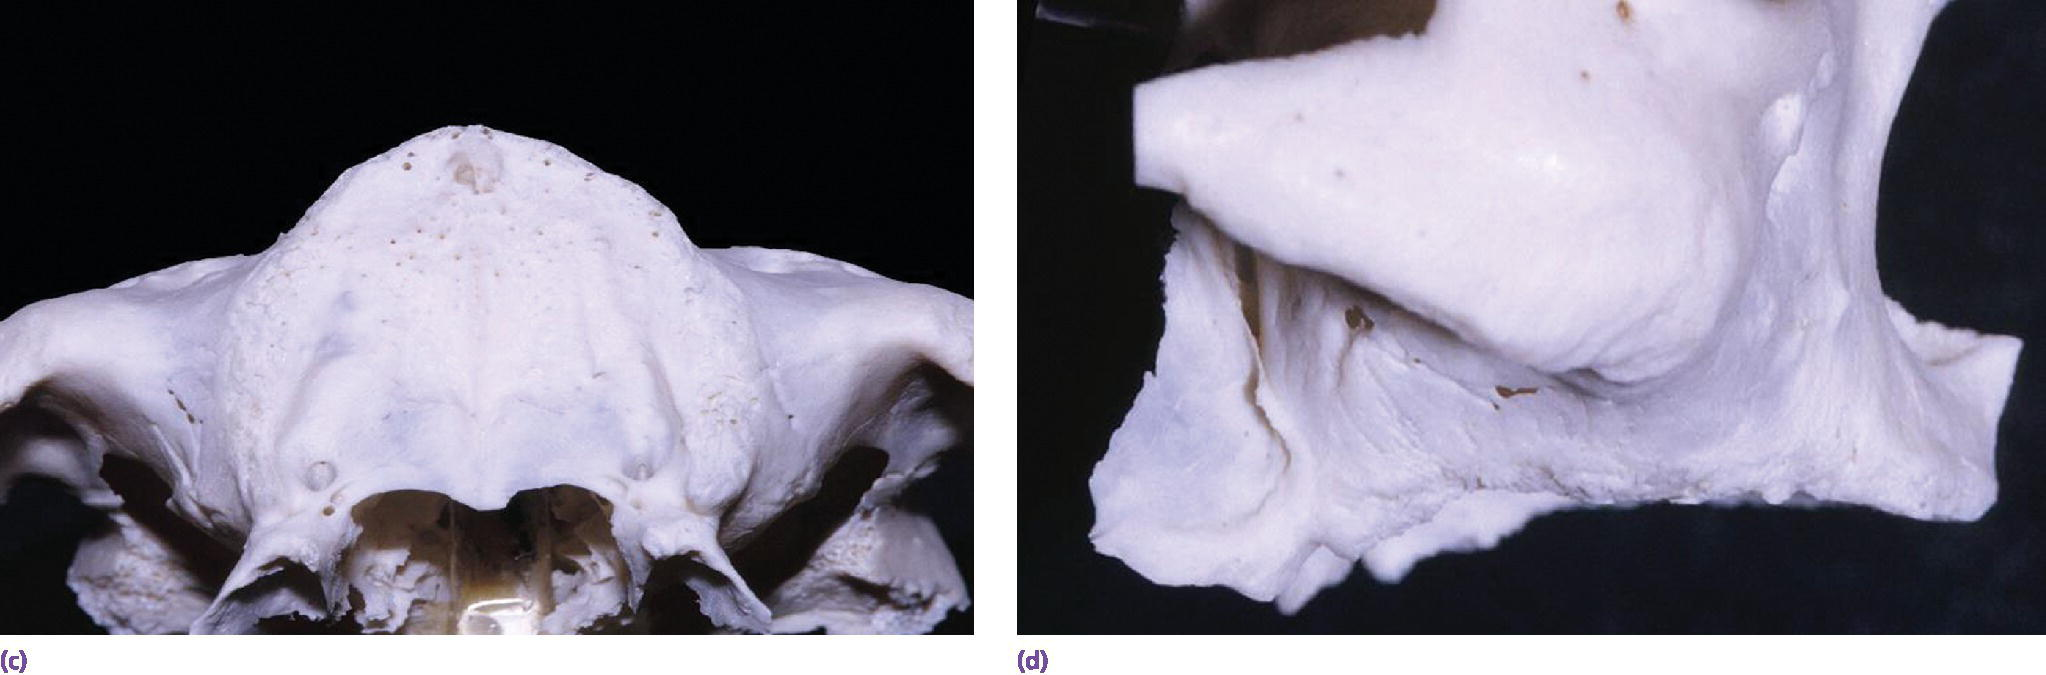 Photos displaying top view (left) and lateral view (right) edentulous dentate maxillae.